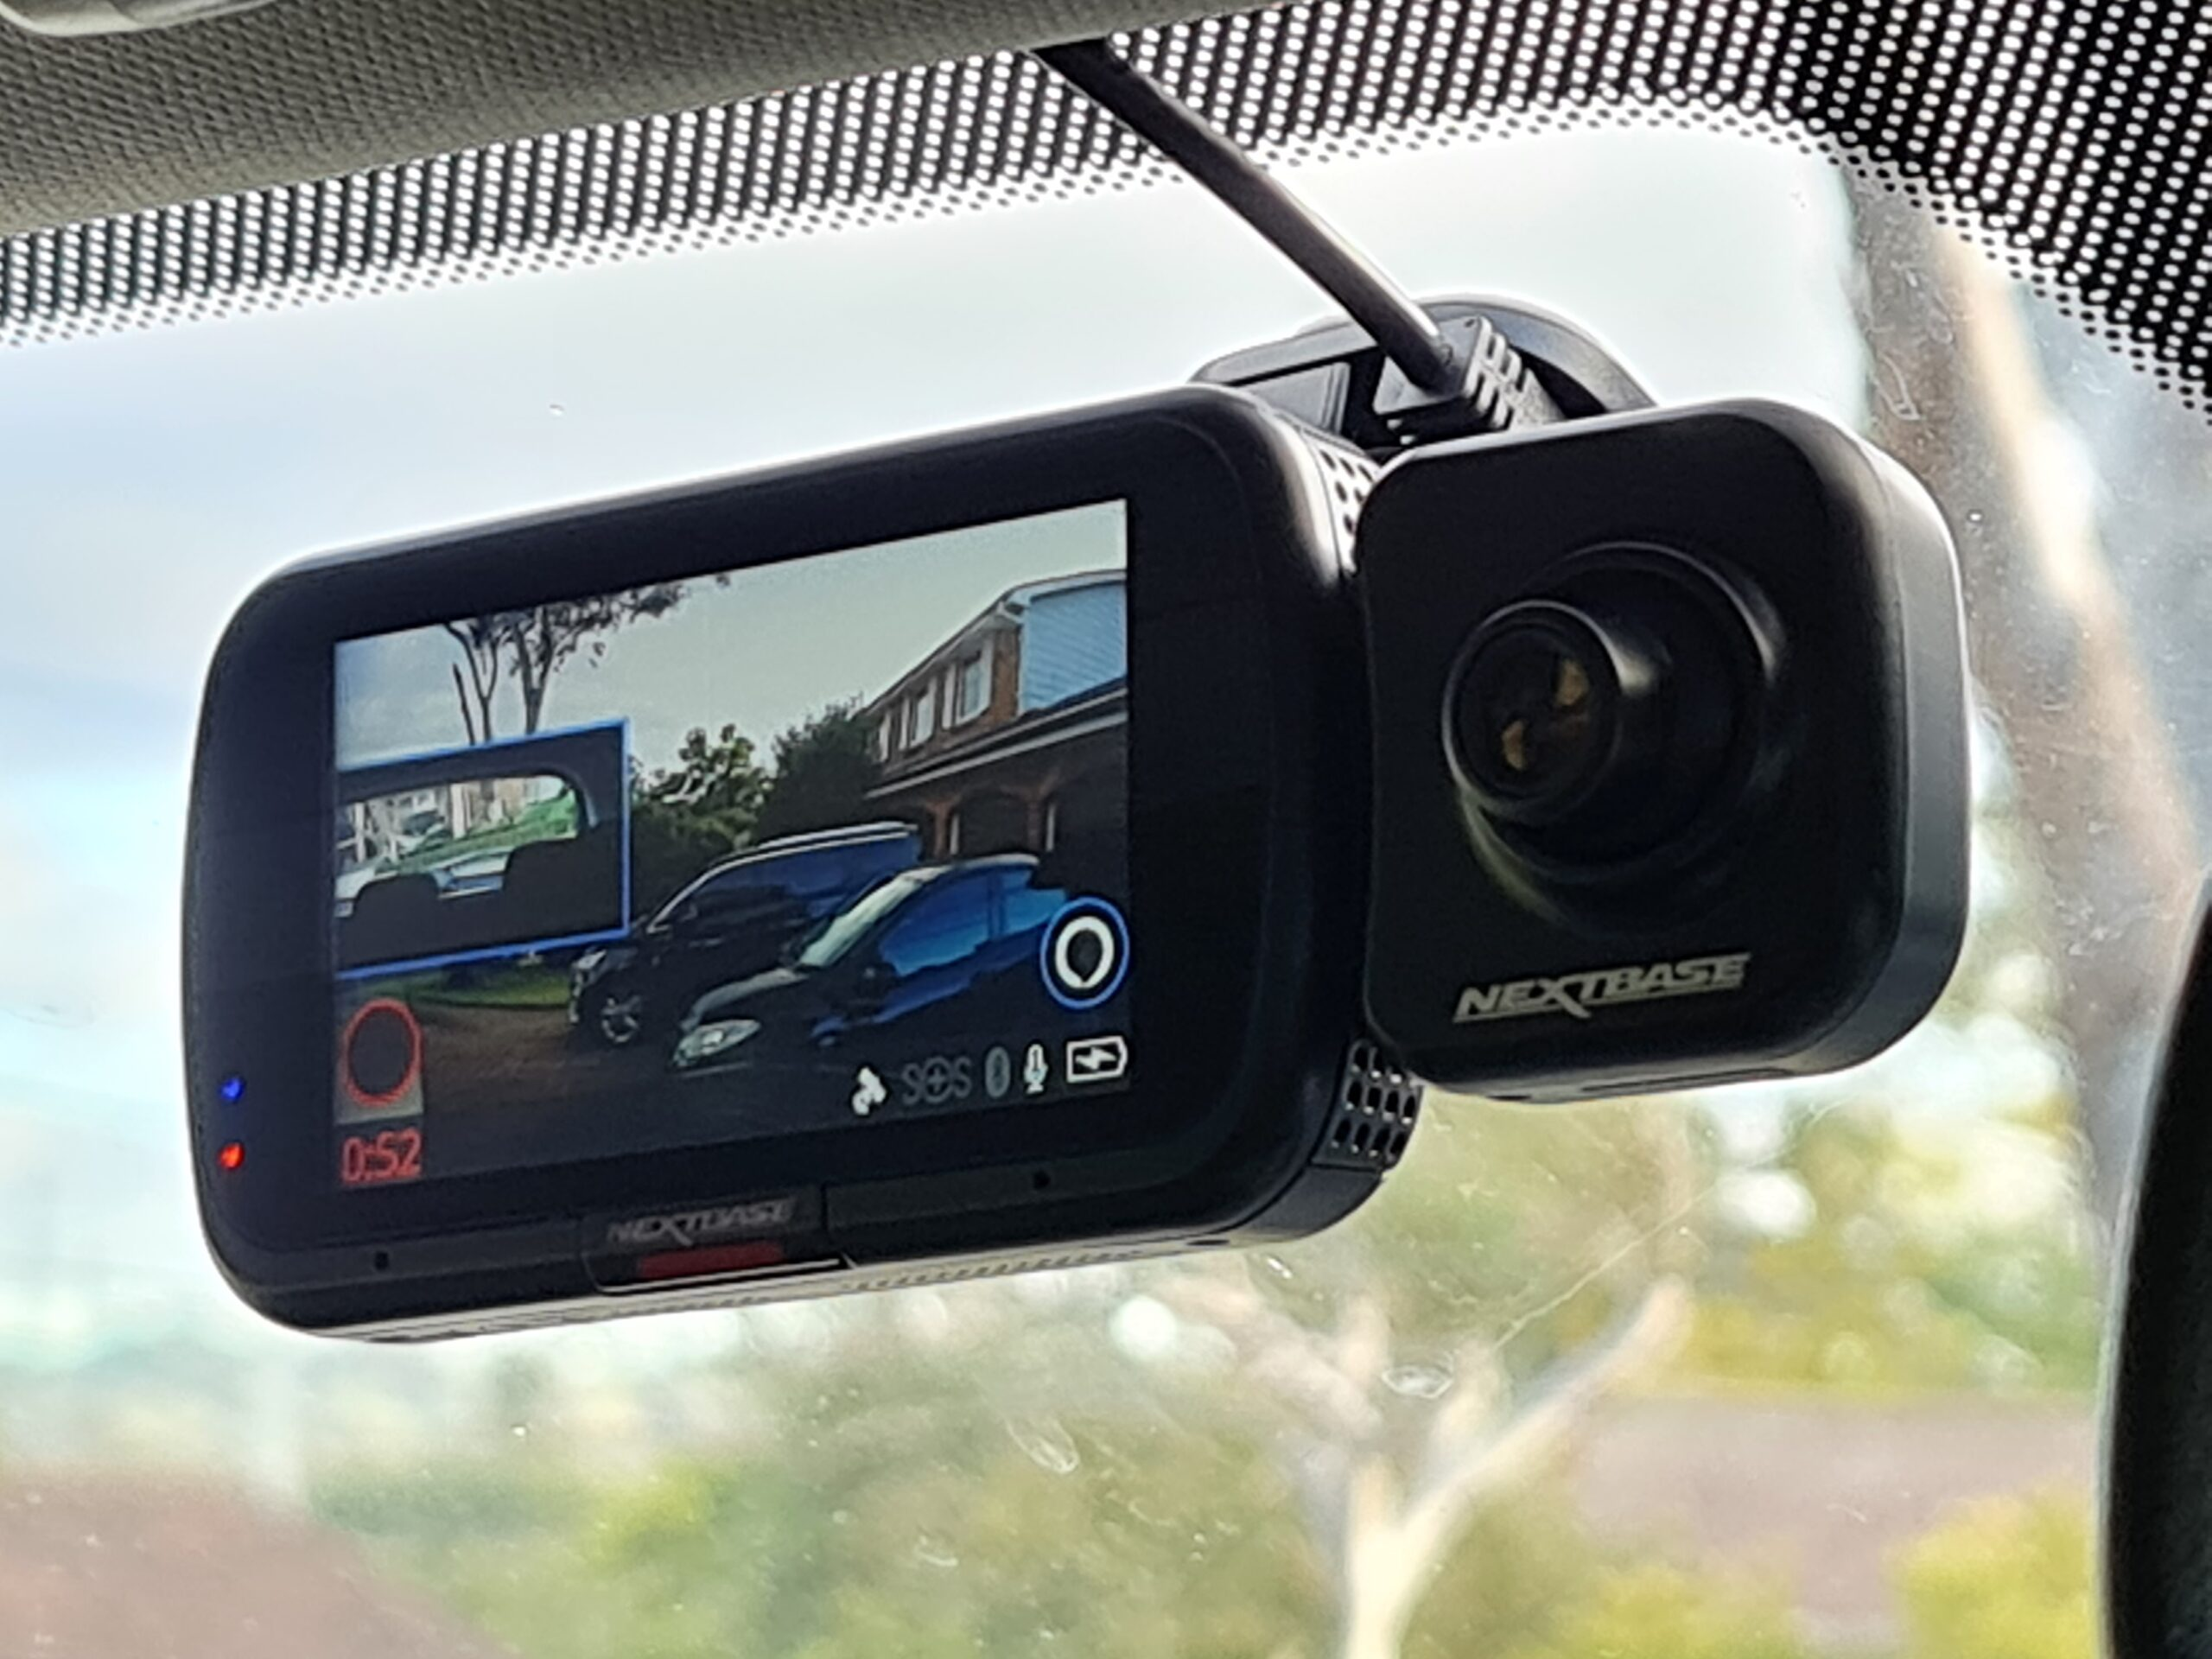 Nextbase 522GW Dashcam positioned on a windscreen